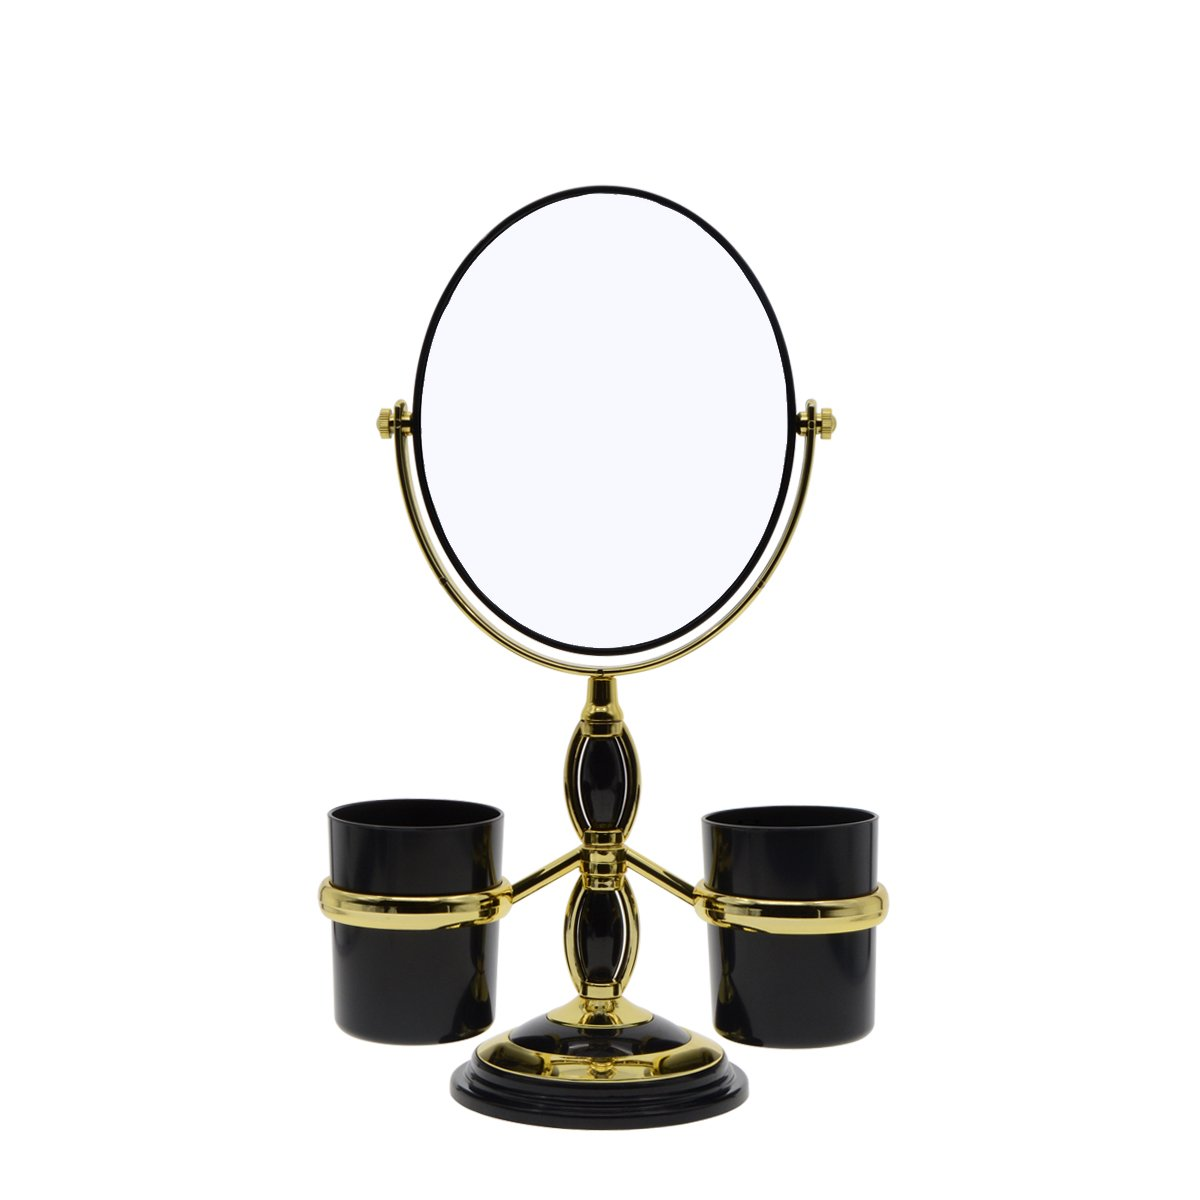 Saim Oval Shaped Double Sided Makeup Mirror, 1X/2X Magnifying Cosmetic Mirror with Two Brush Holders for Women Girls - Black